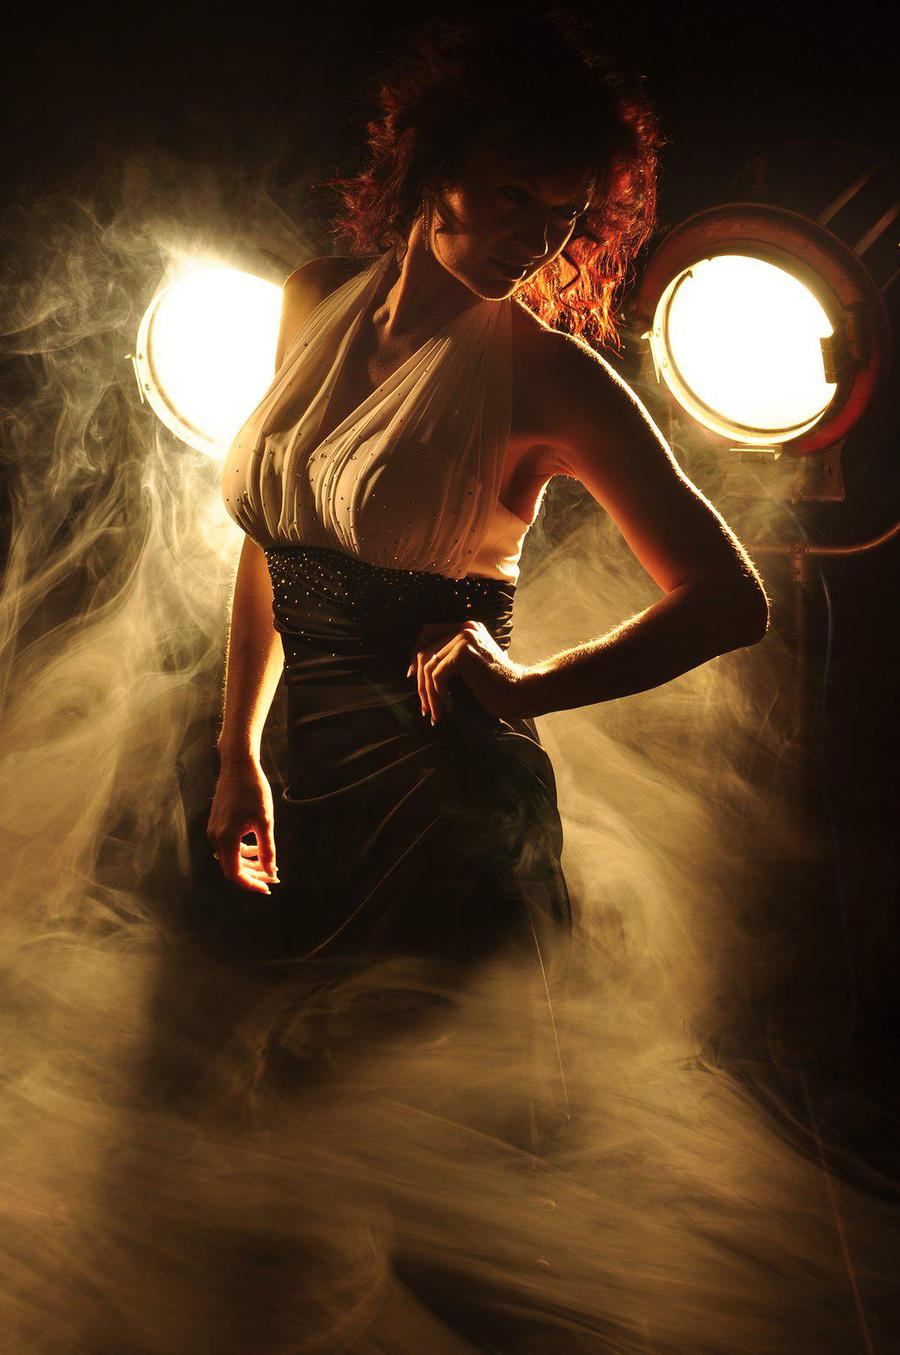 No Smoke Without Fire. / Photography by Russell T Hill, Model Alibrooks / Uploaded 27th June 2016 @ 08:17 PM